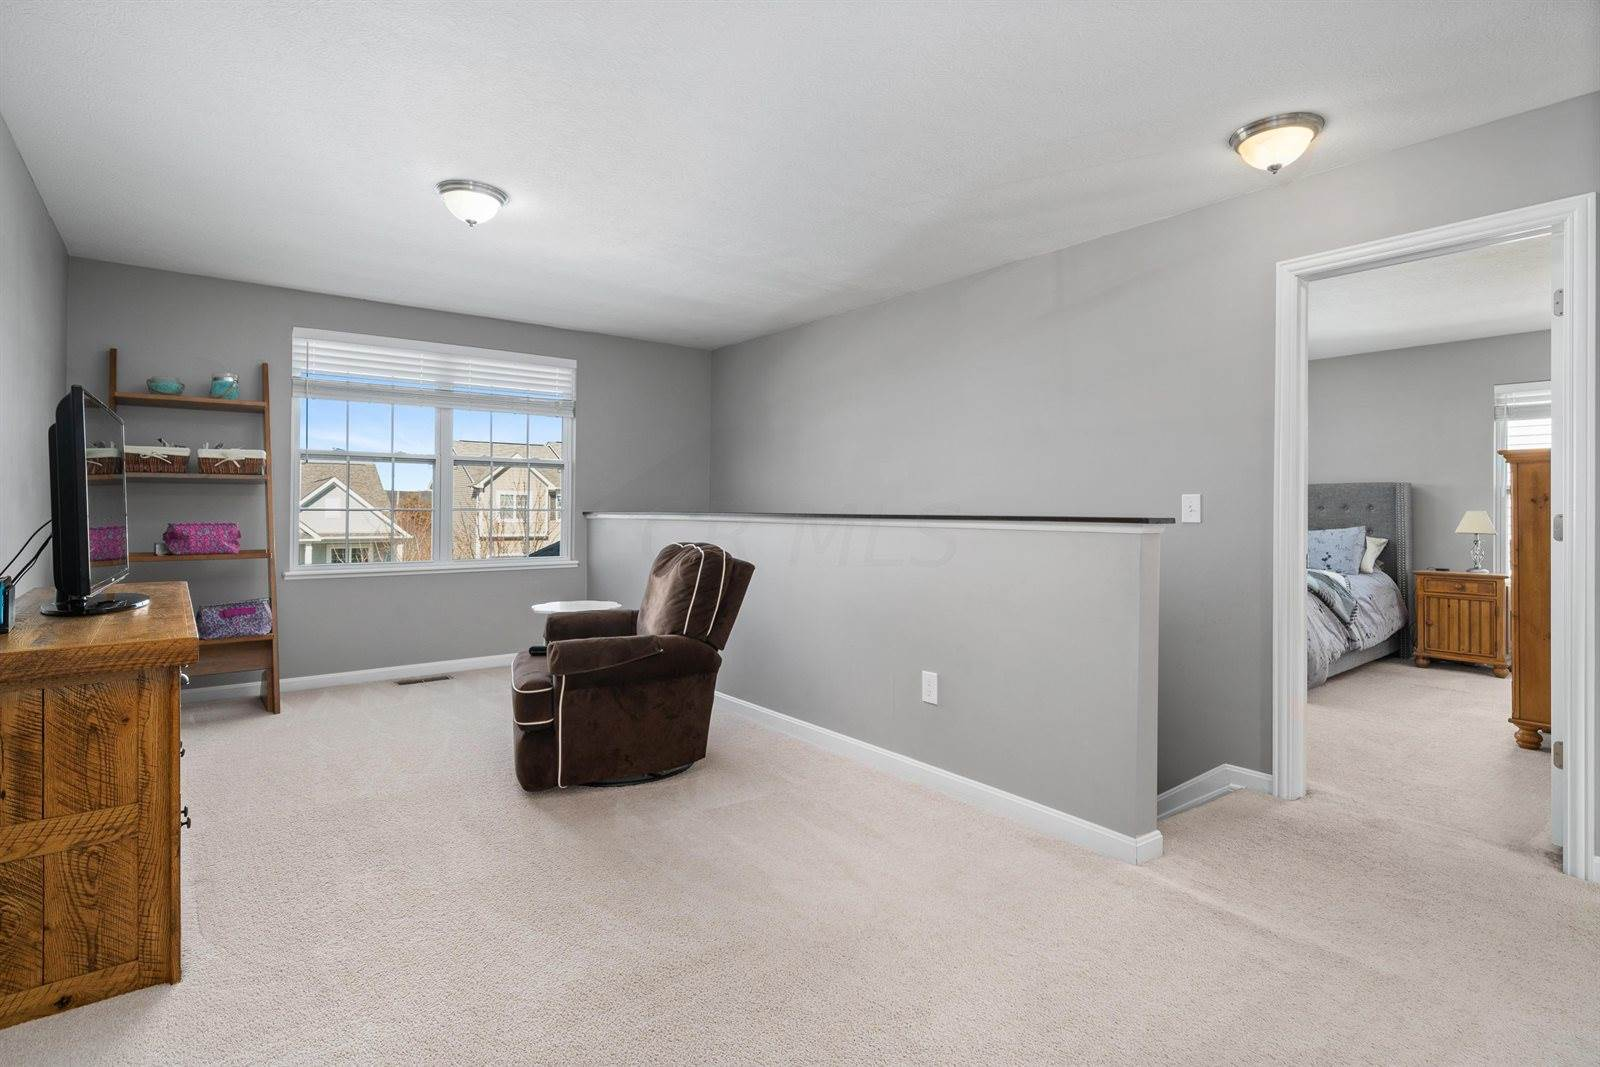 881 Broadview Chase Drive, Delaware, OH 43015